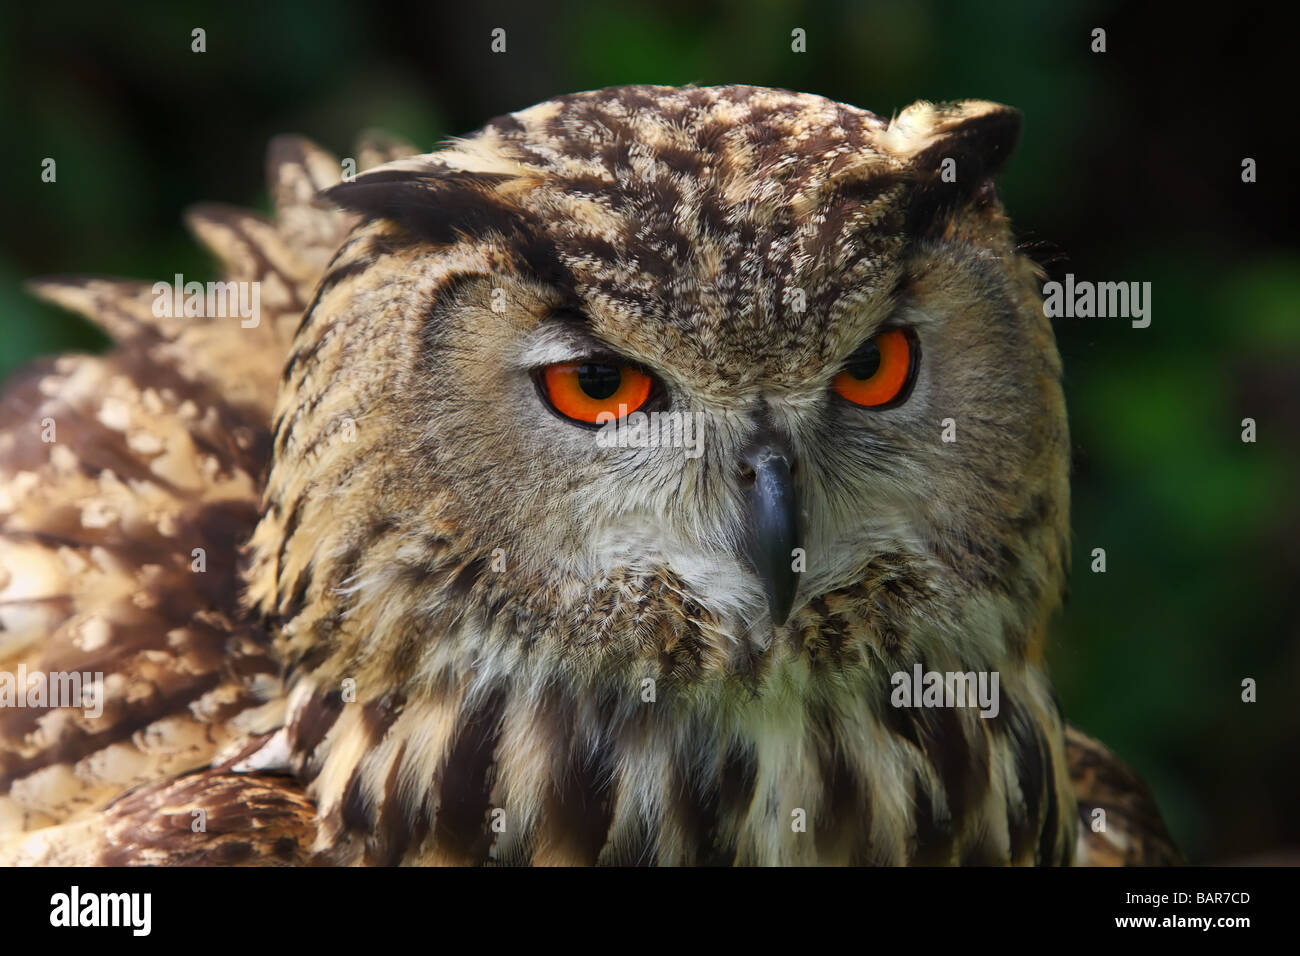 Close up portrait of an Owl in front of a dark forest - Stock Image